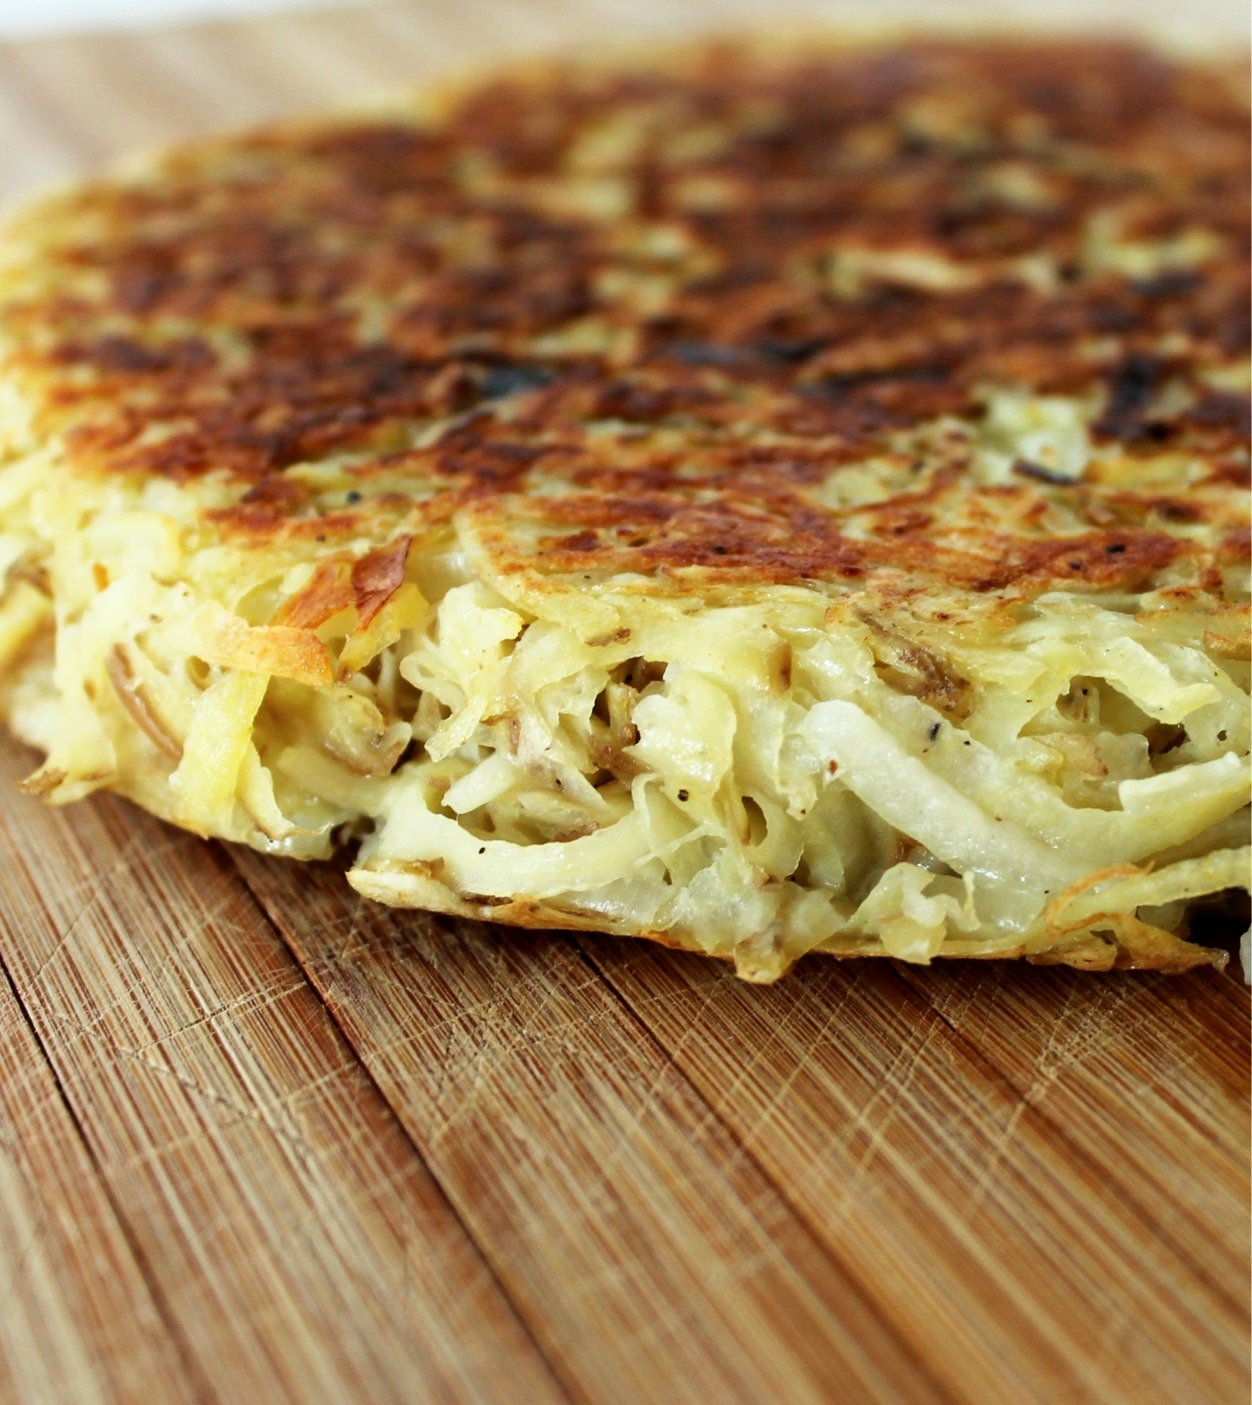 tiph's-potato-rosti-with-bacon-tiny-budget-cooking-recipe-limahl-asmall.jpg